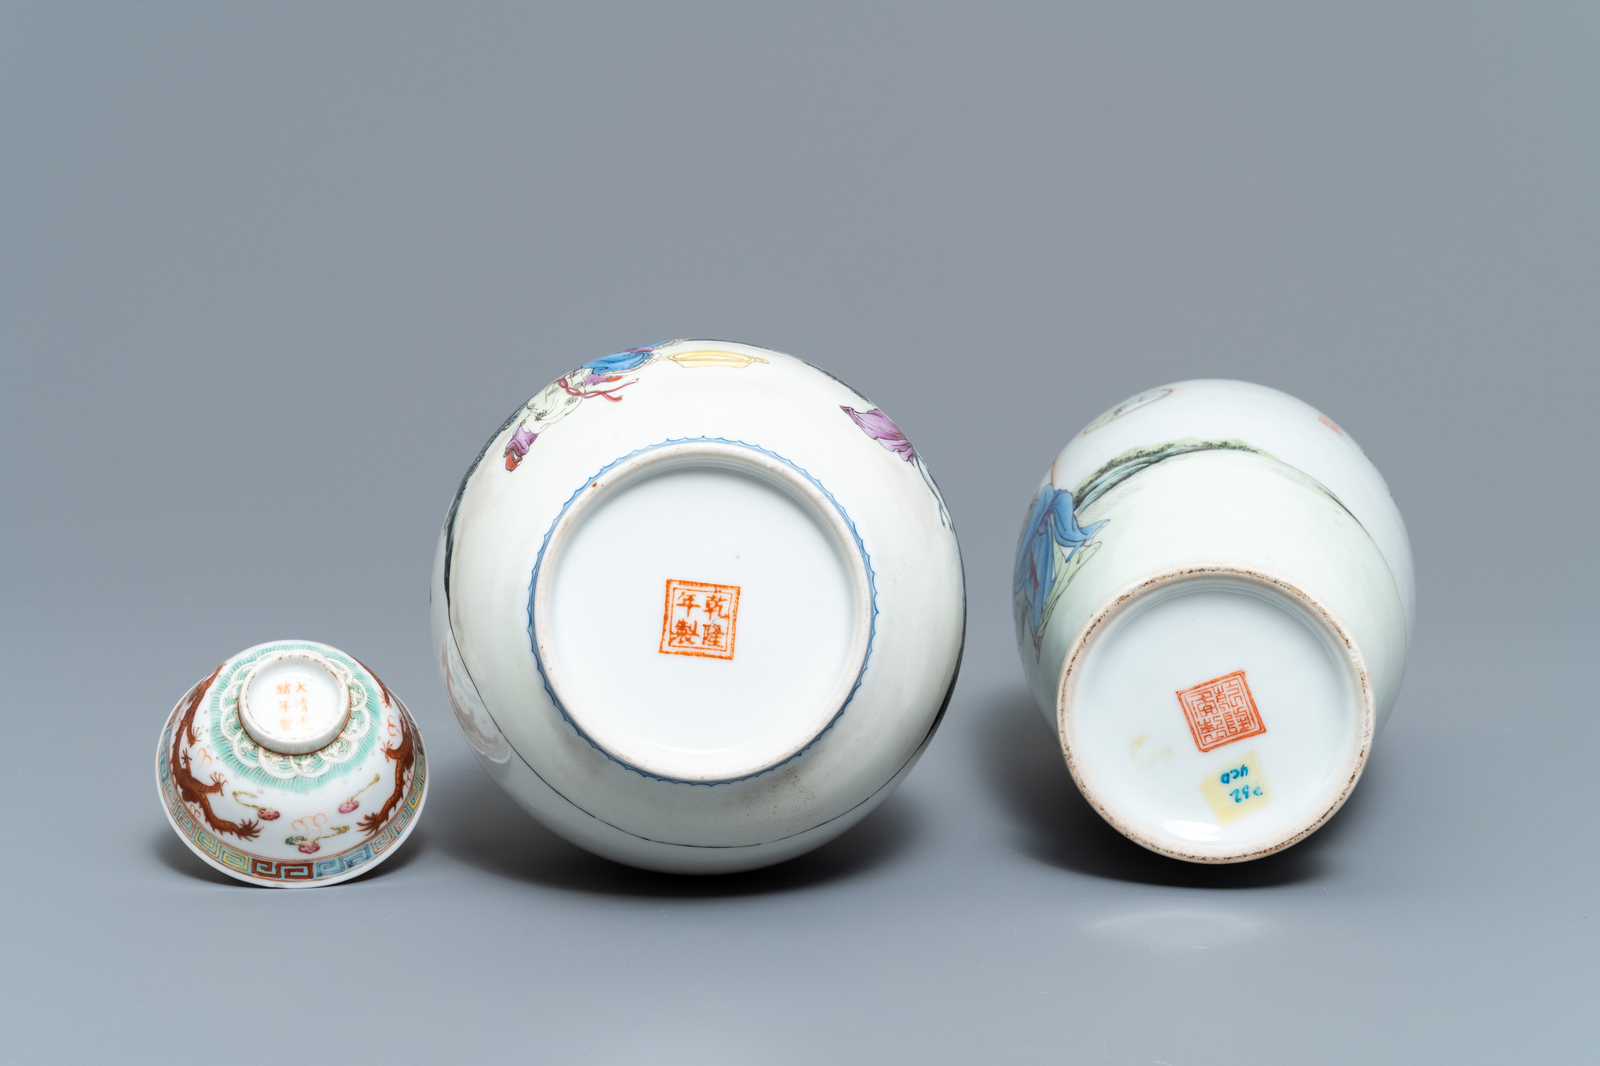 Lot 15 - A varied collection of Chinese porcelain, Qing and Republic, 19/20th C.